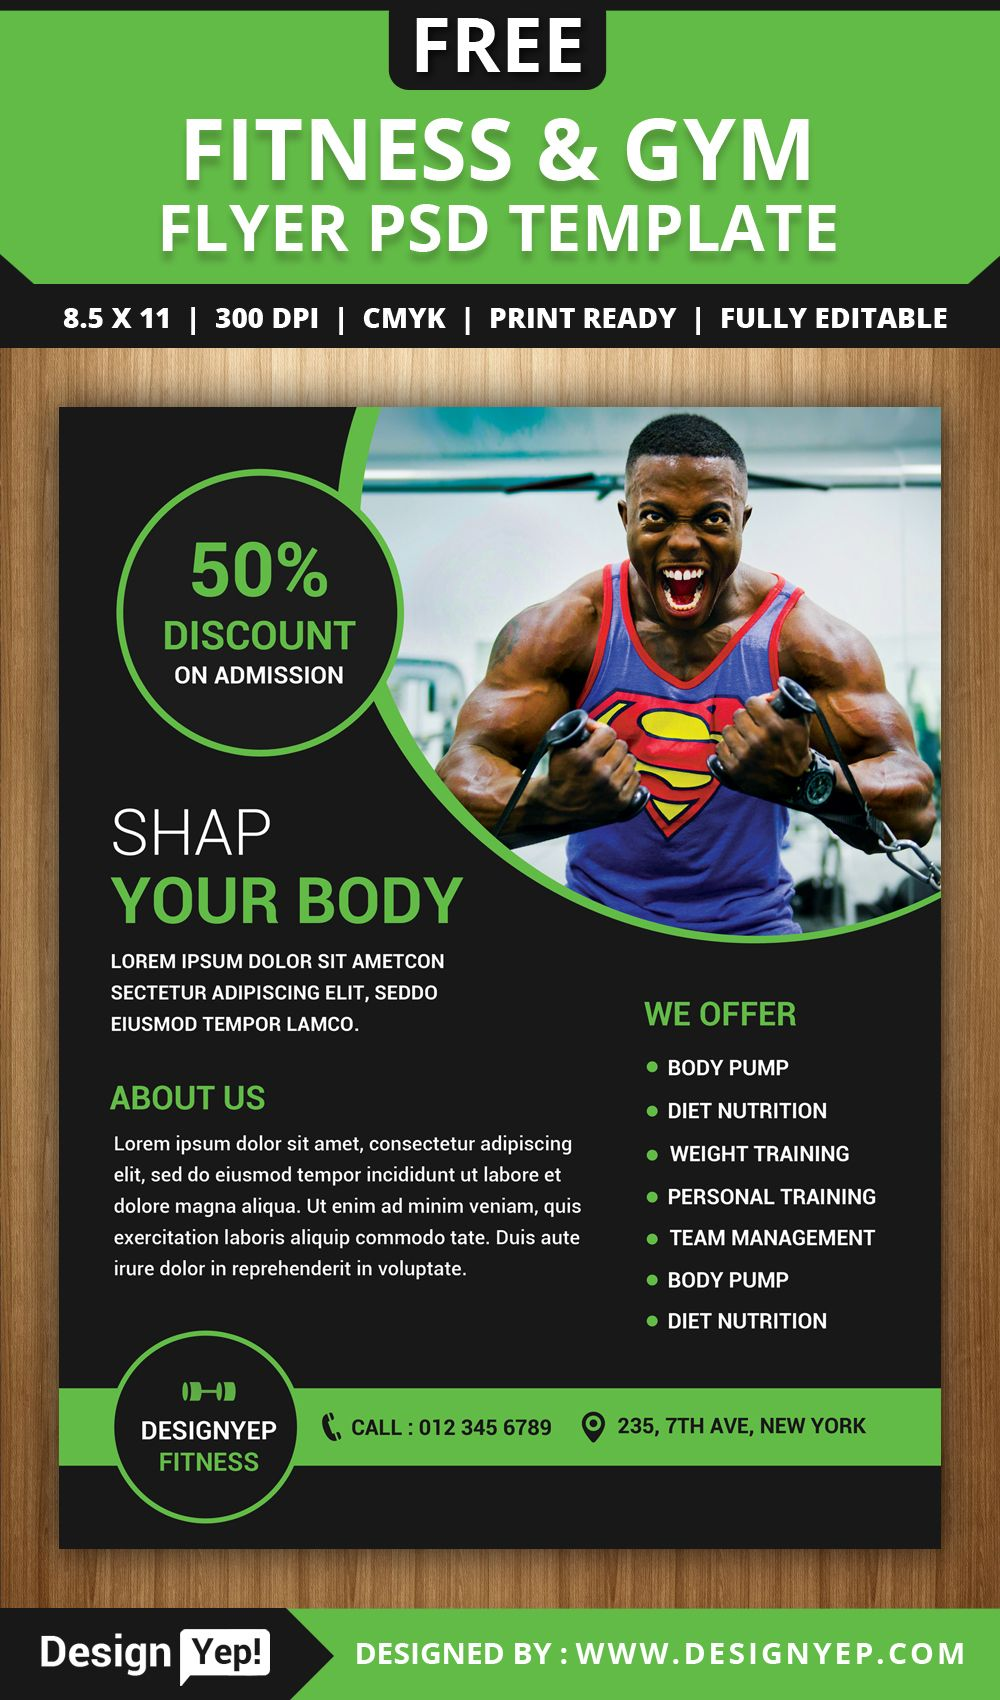 Free Gym And Fitness Flyer Psd Template Fitness Flyer Flyer